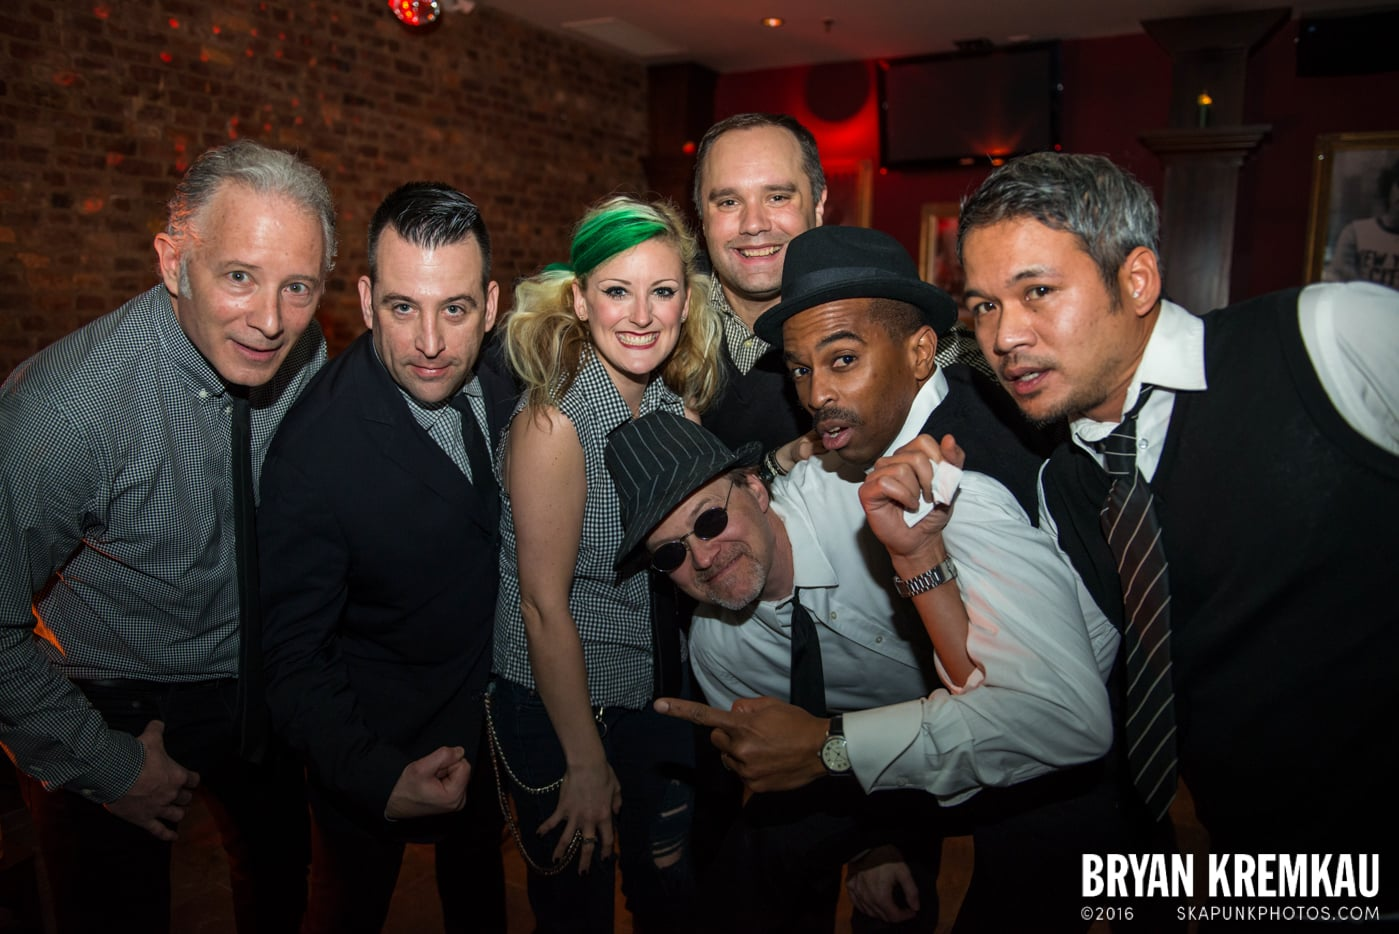 Rude Boy George @ Characters, NYC - 11.16.13 (39)